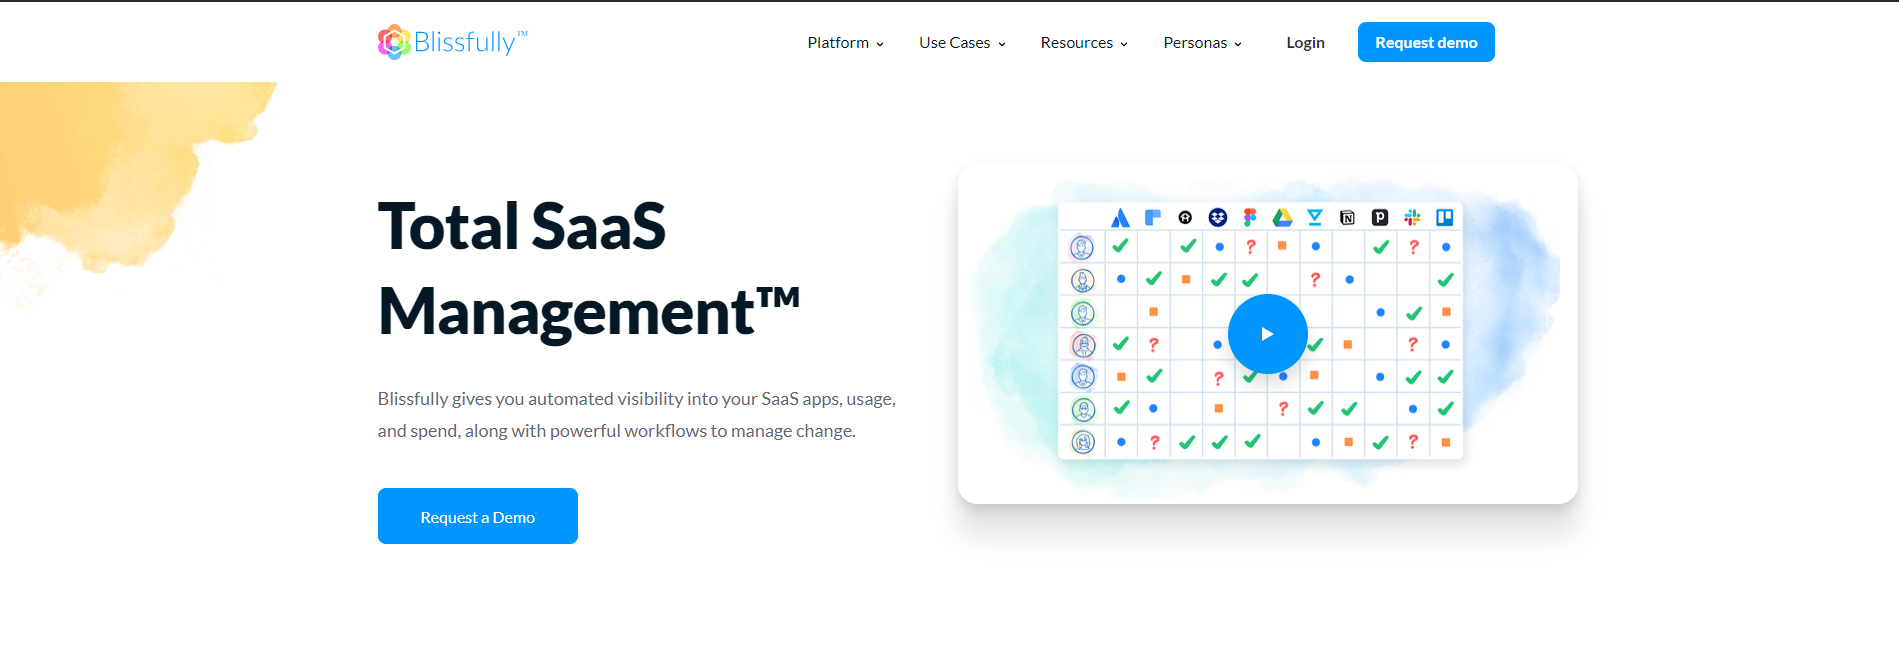 Blissfully Total SaaS Management